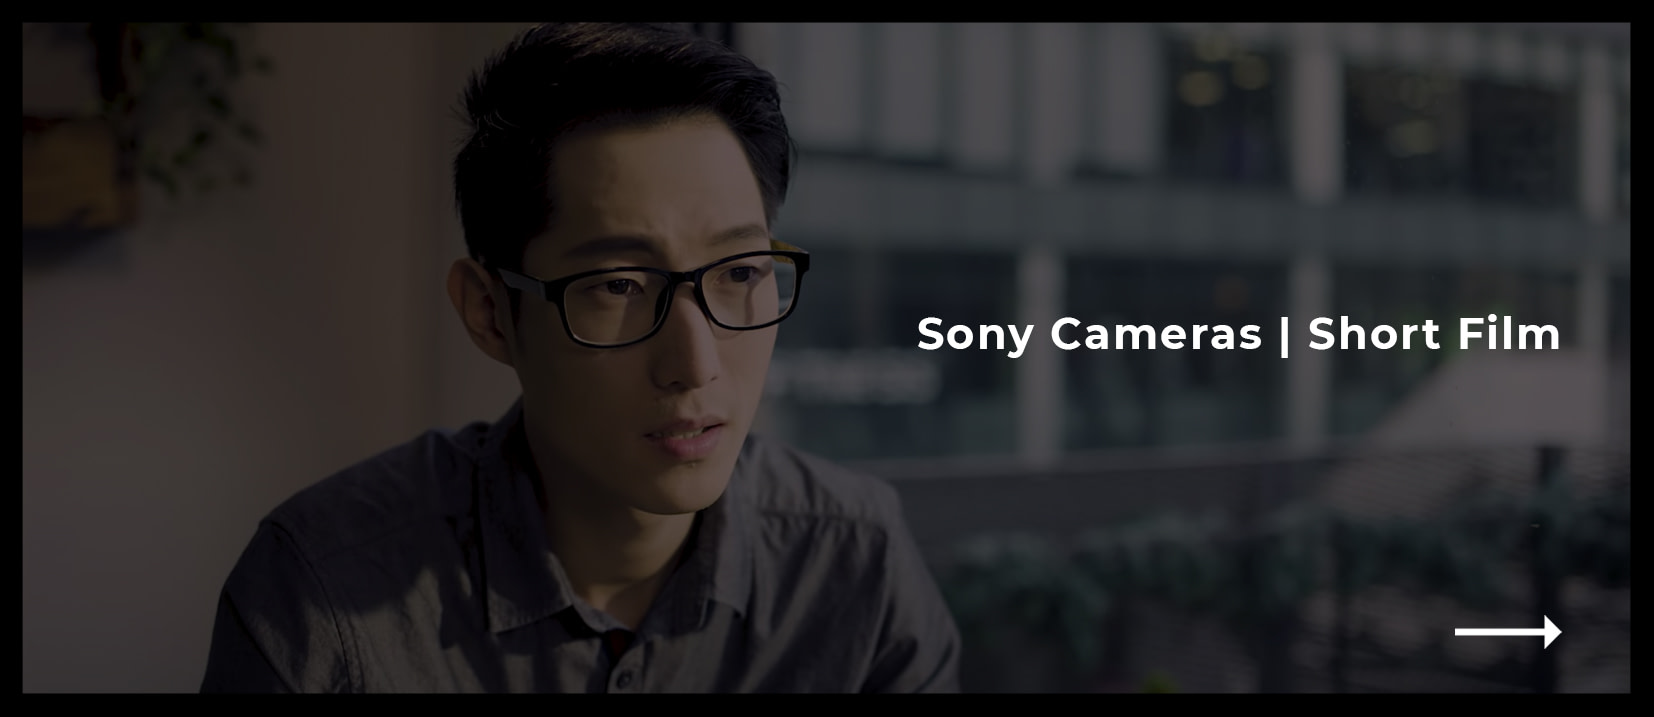 Sony Cameras - Love You Unconditionally